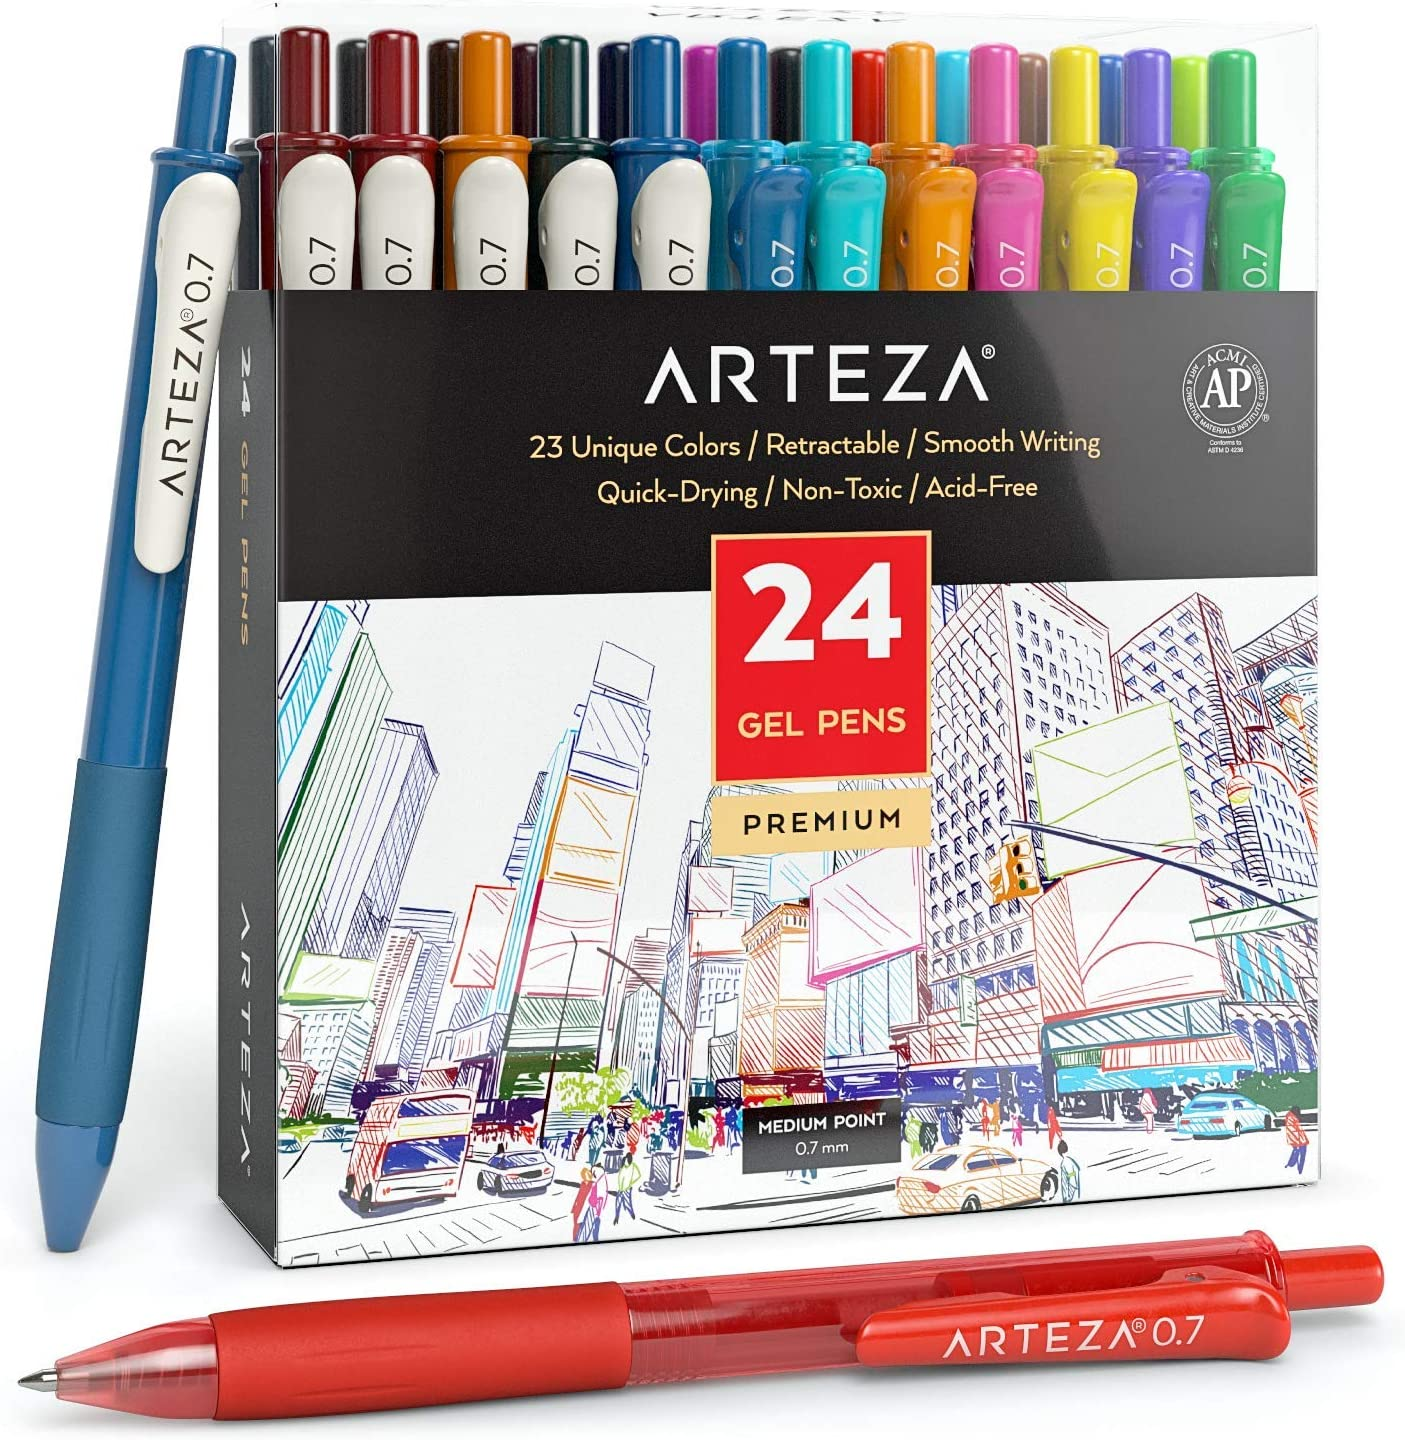 Arteza Colored Gel Pens, 24 Pack of Assorted Colors, 10 Vintage and 14 Vibrant Colors, 0.7 mm Fine Tip, Retractable, For Journaling, Drawing, Doodling, and Notetaking